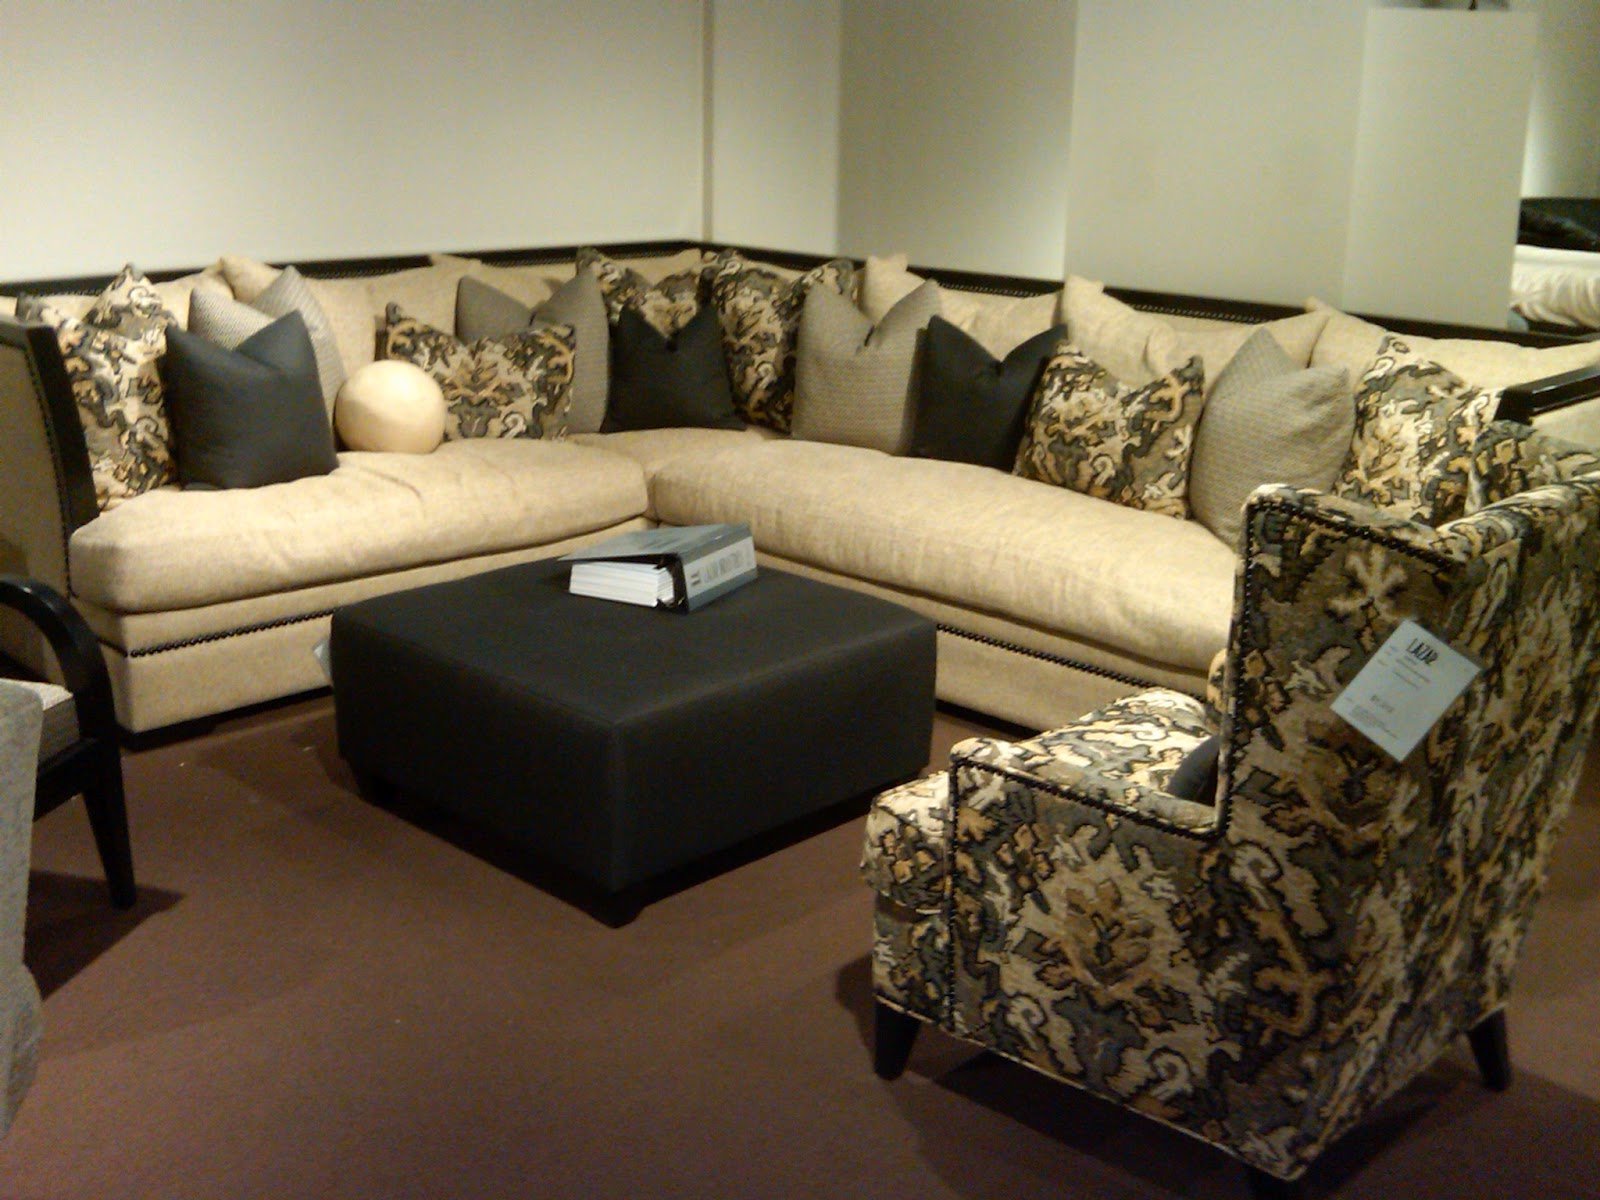 Charmant Design Trends 2012  Whatu0027s Hot This Year In Upholstered Furniture